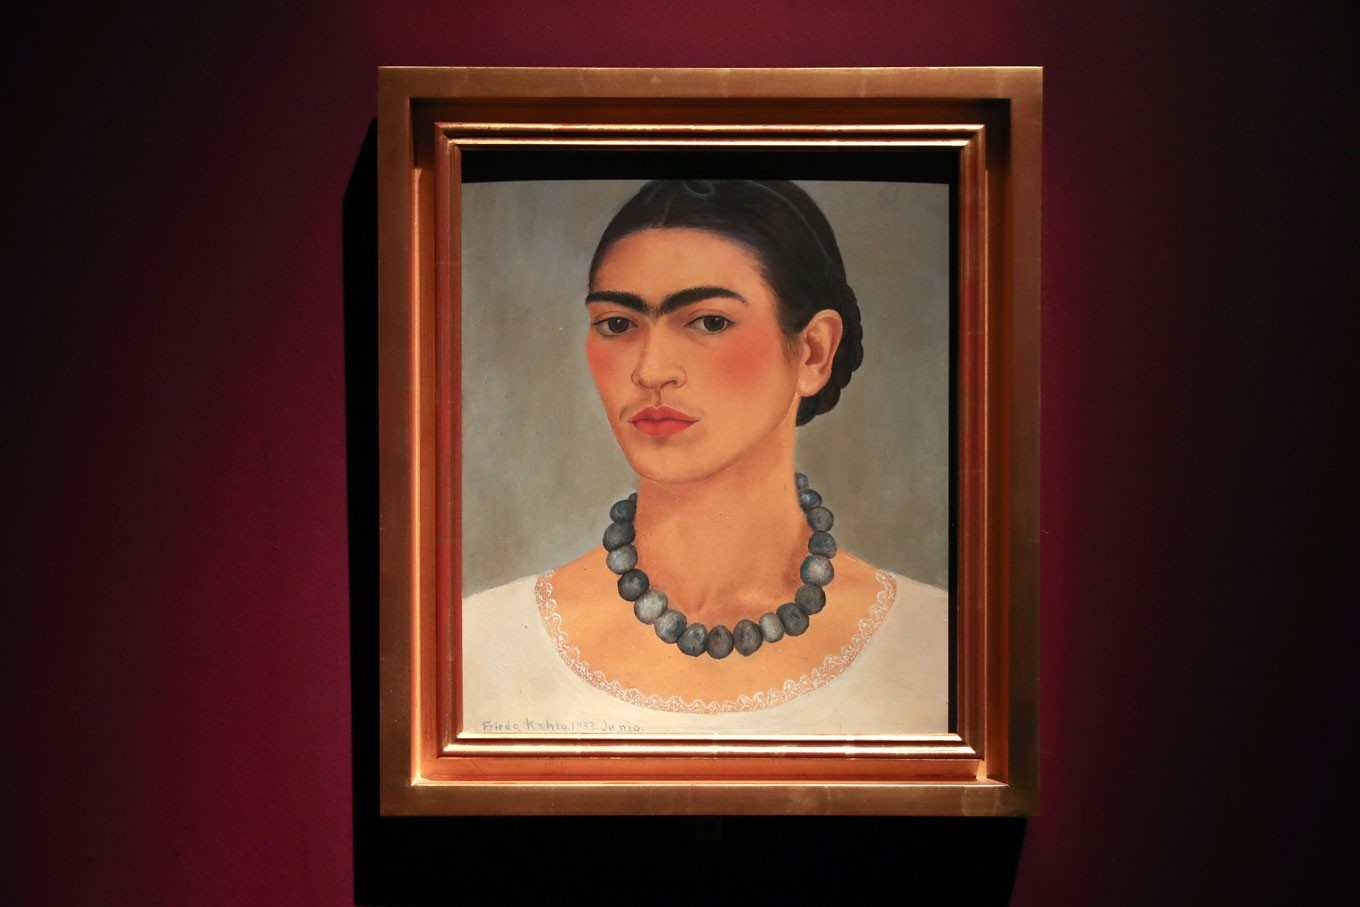 London museum explores life behind art of Frida Kahlo